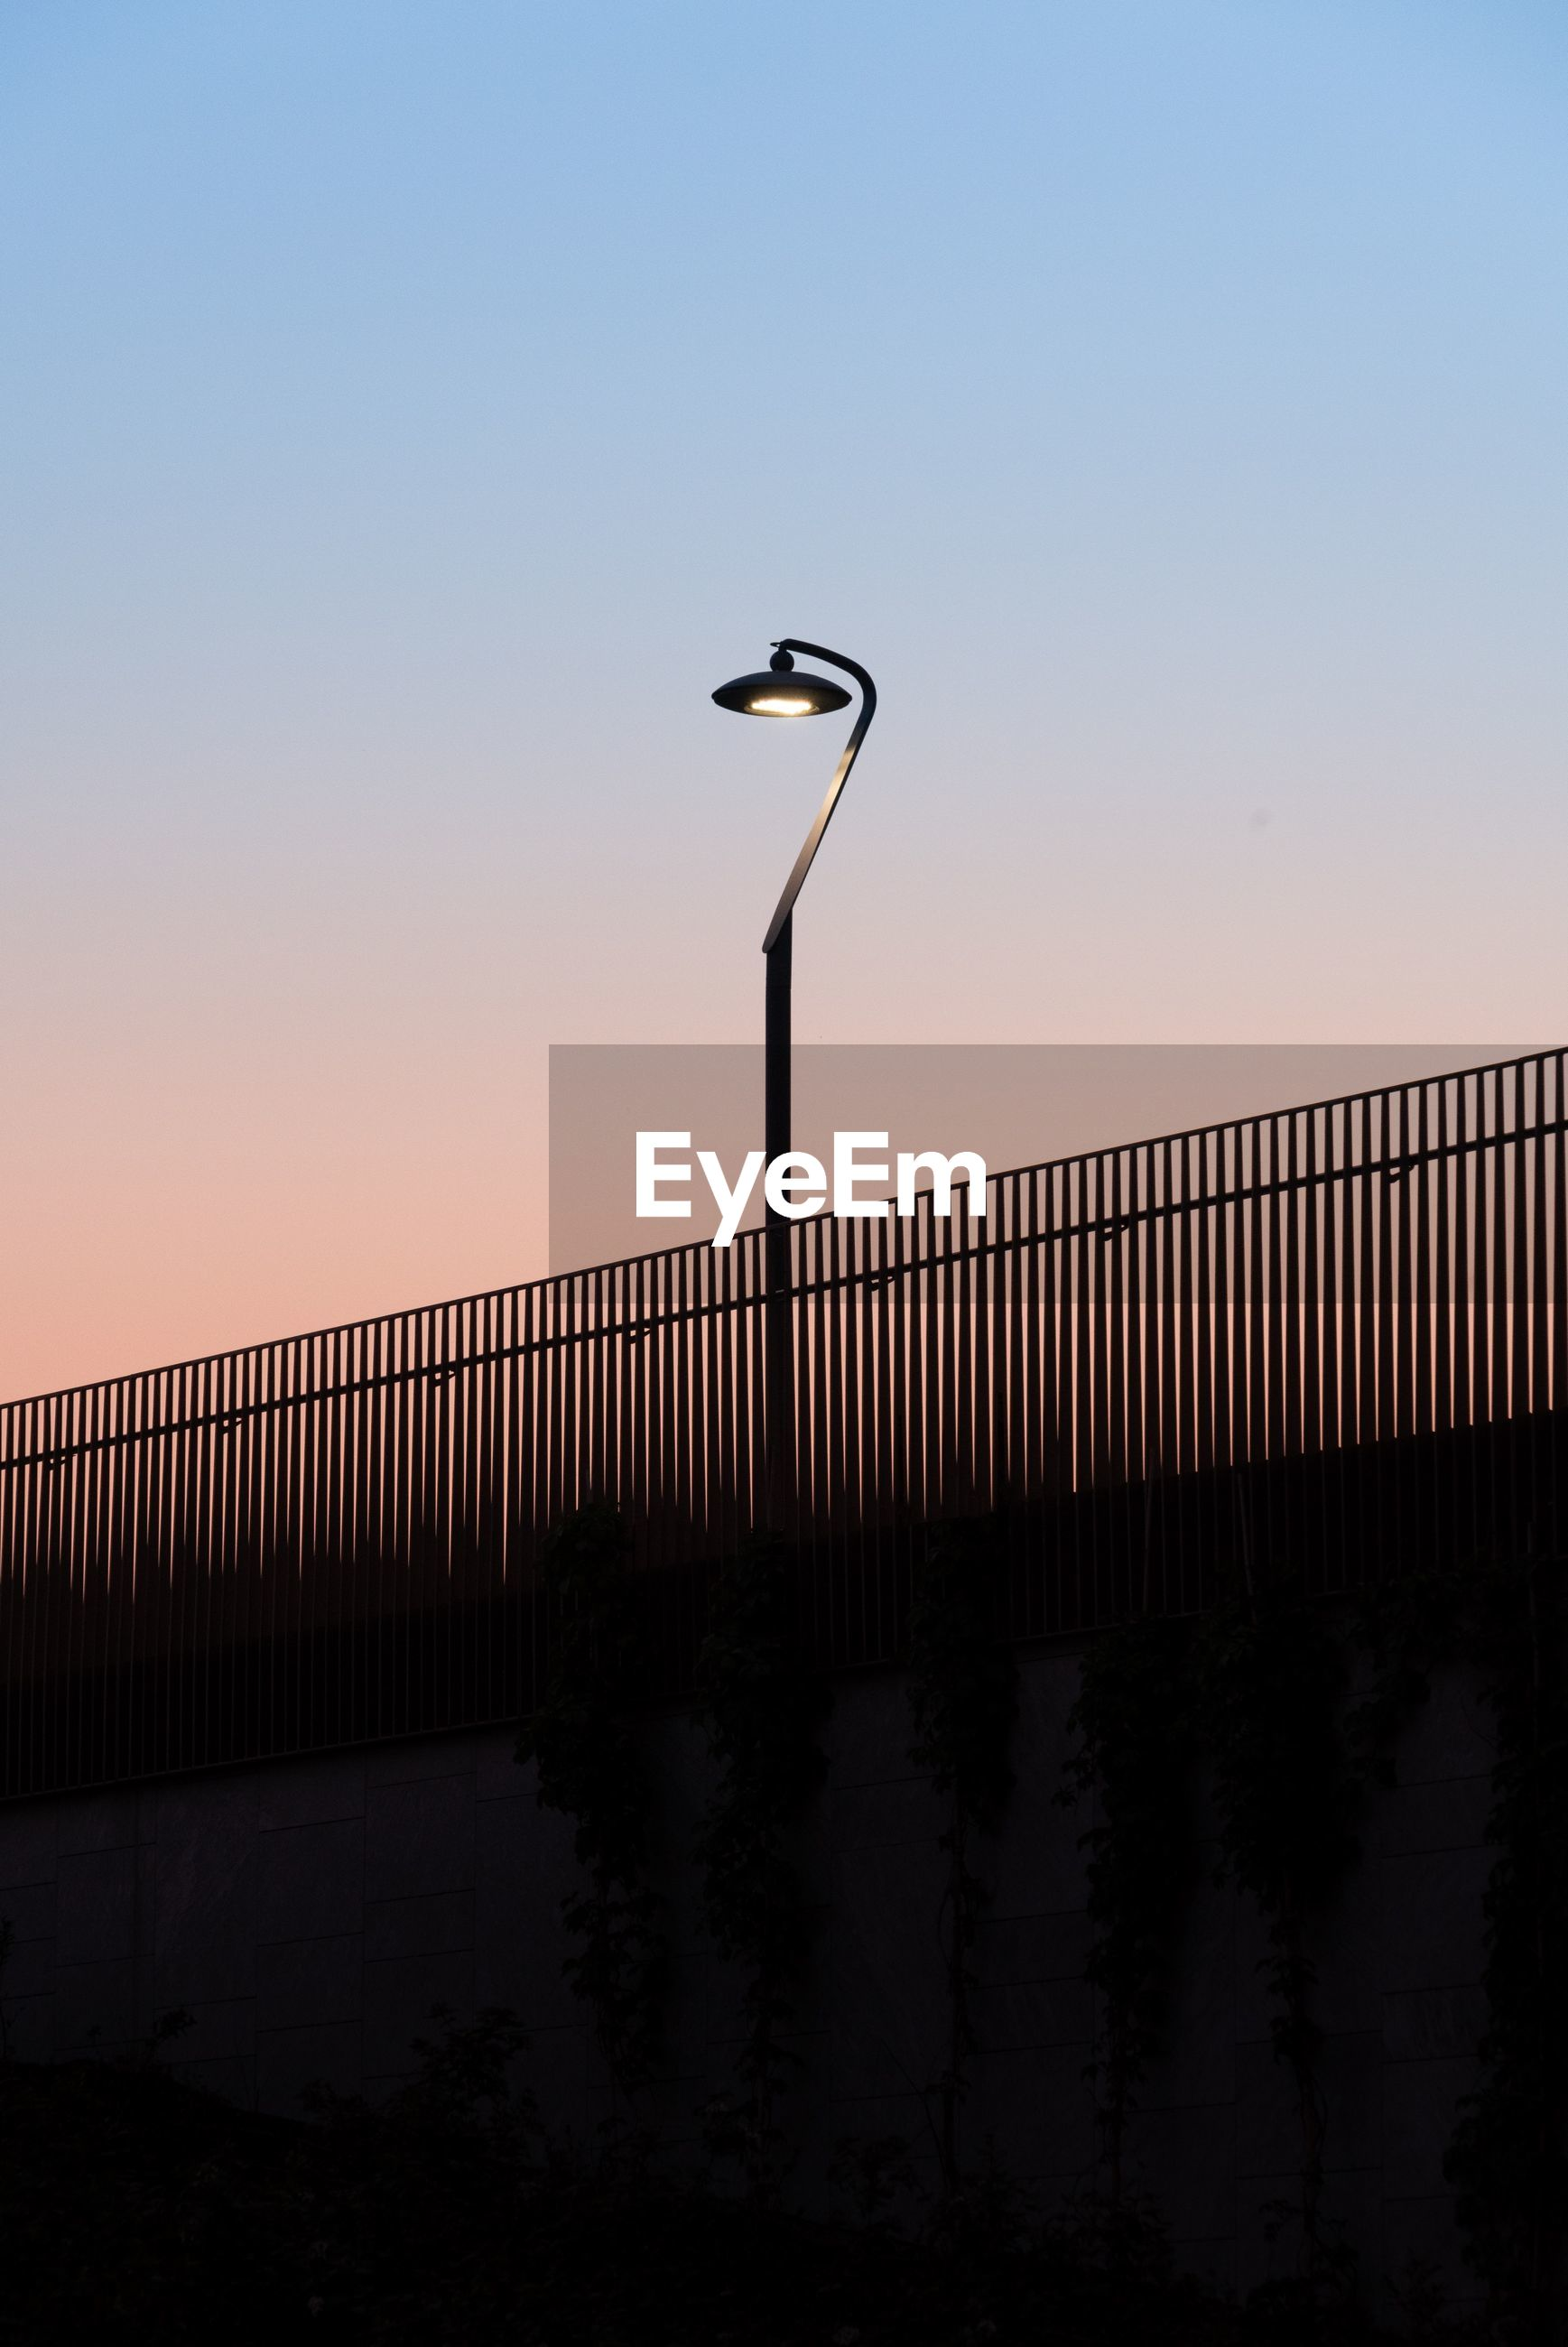 sky, clear sky, nature, copy space, sunset, bridge, silhouette, railing, built structure, bridge - man made structure, architecture, street light, connection, vertebrate, bird, no people, beauty in nature, street, outdoors, scenics - nature